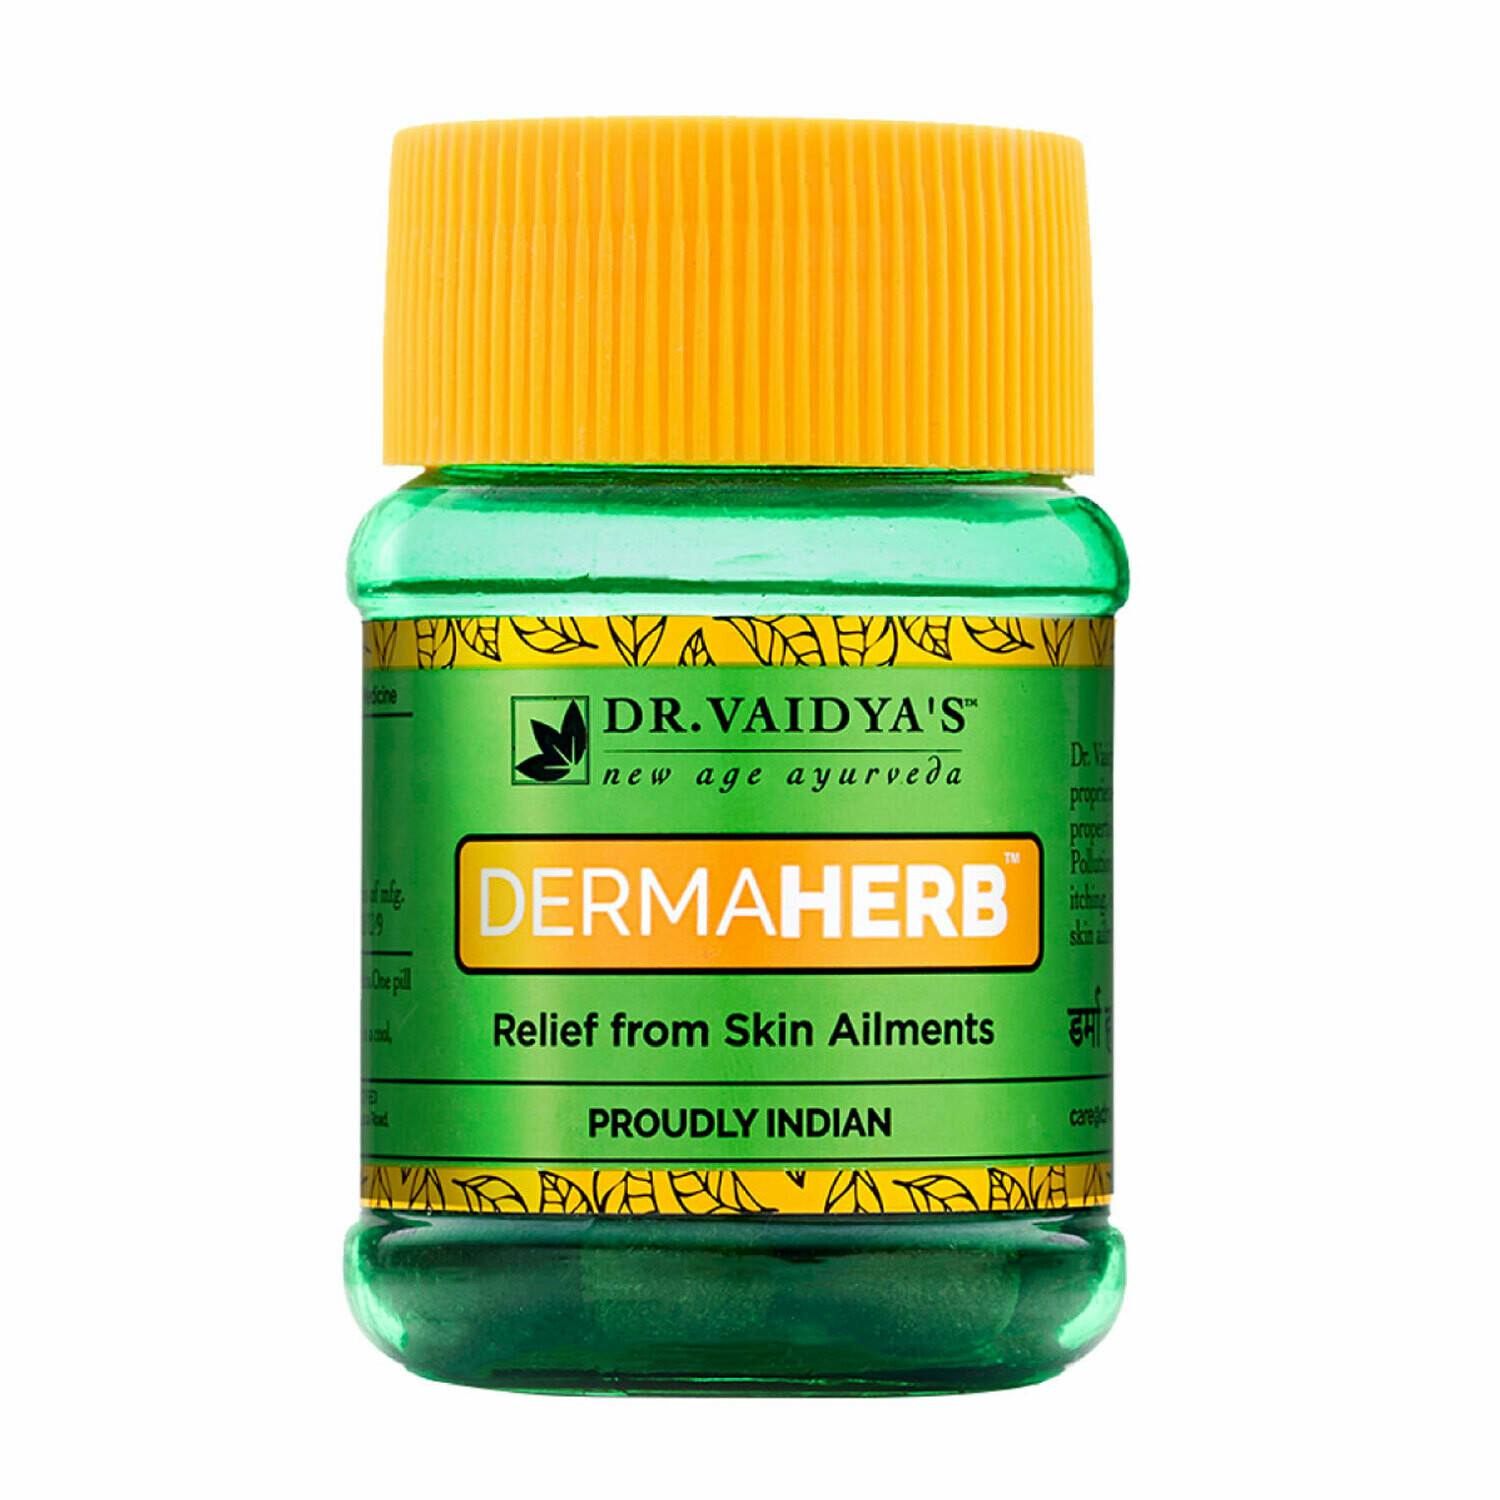 Dr. Vaidya's Dermaherb Pills - Ayurvedic Treatment for Skin Allergies & Eczema - Pack of 2